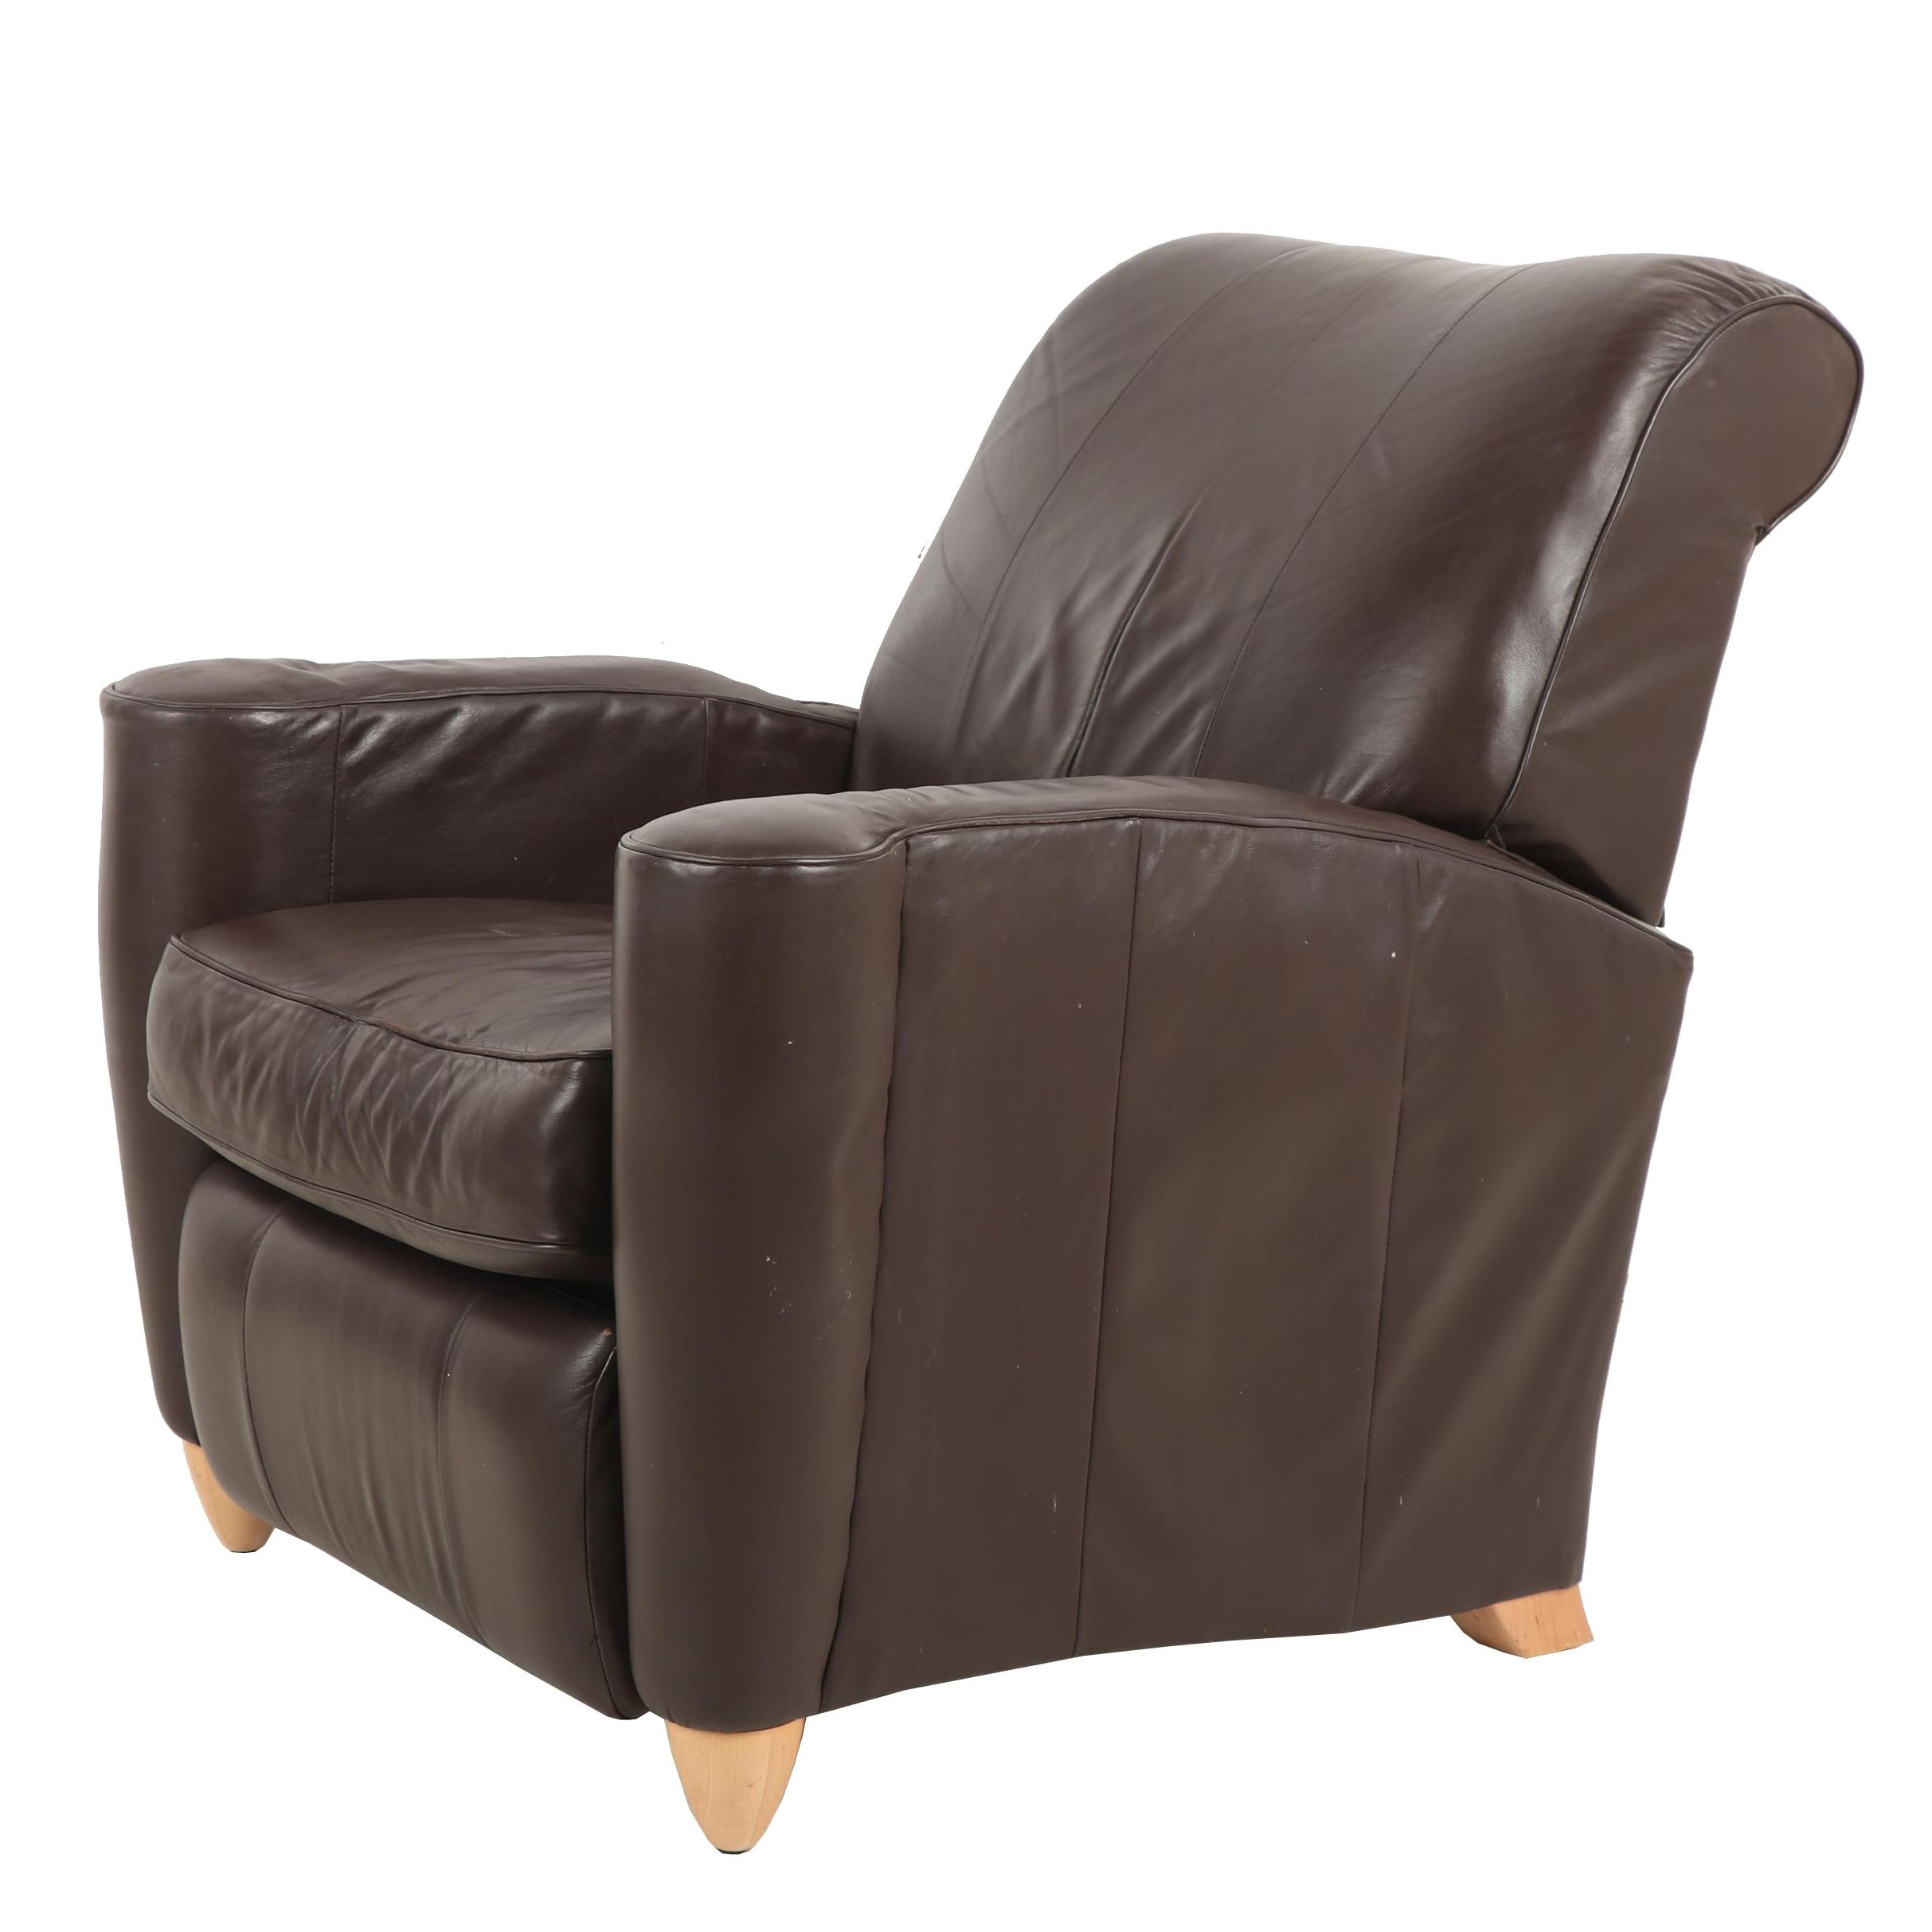 La-Z-Boy Classics Contemporary Reclining Armchair